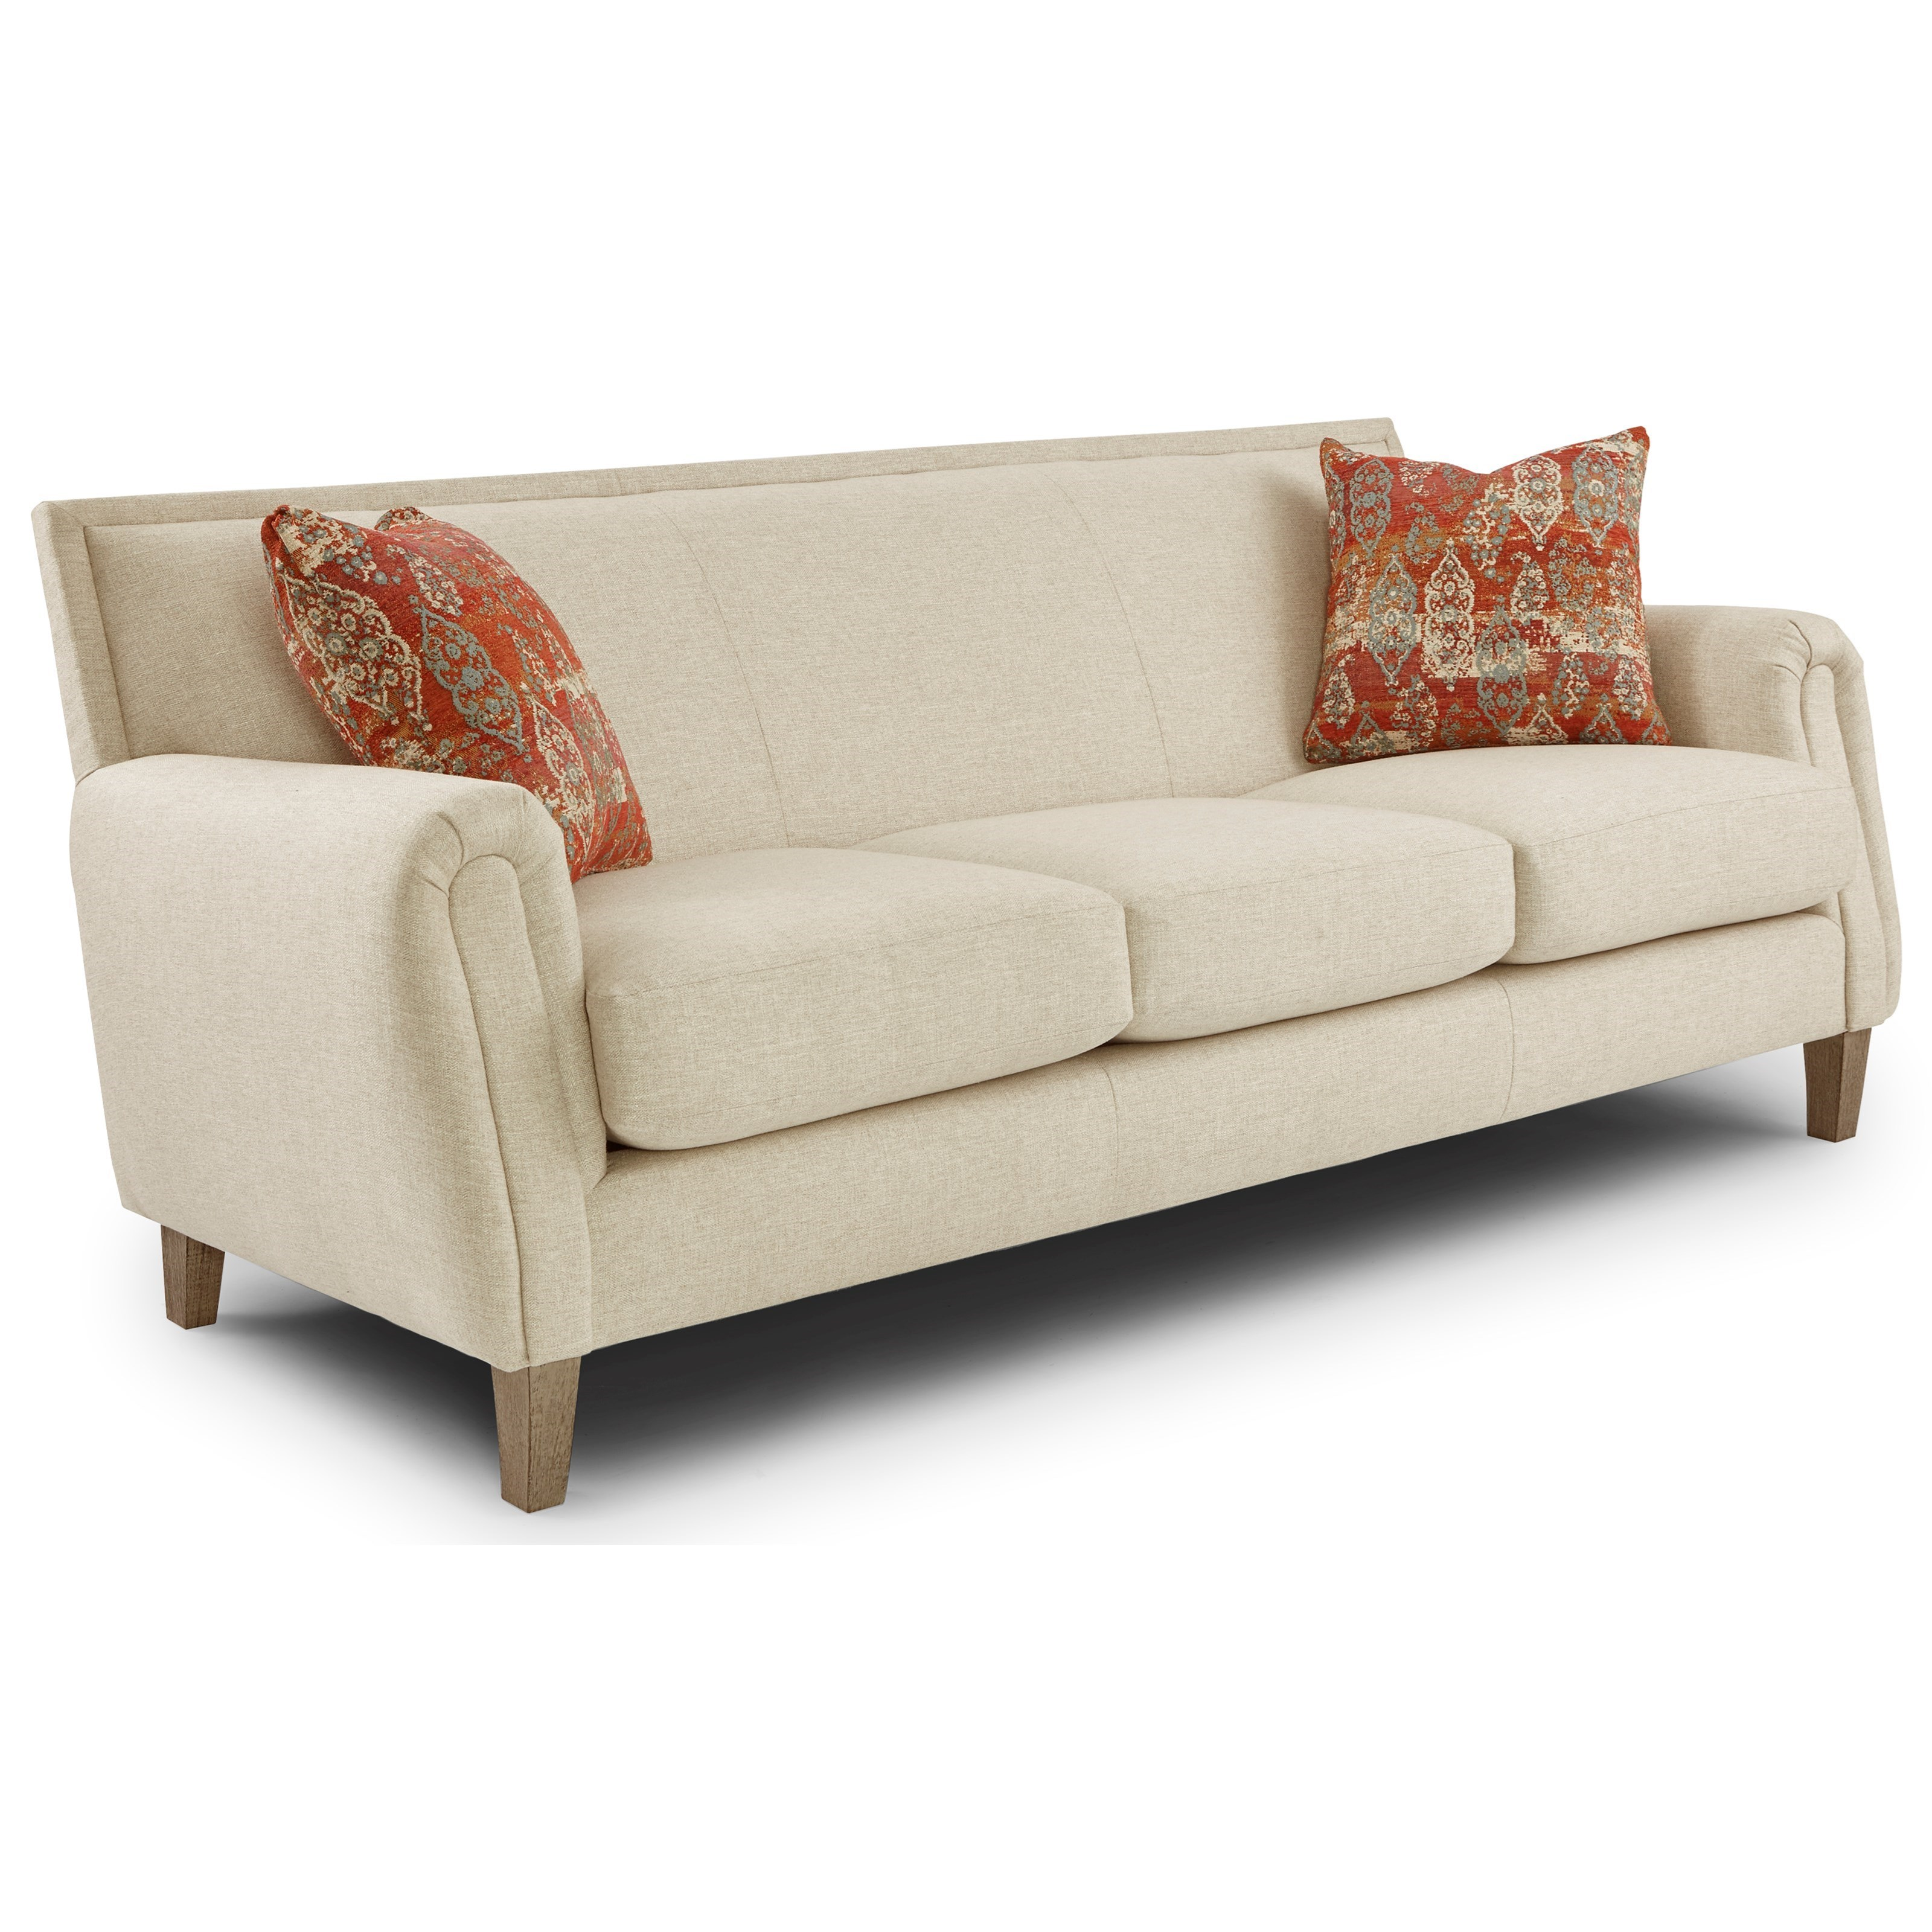 Best Home Furnishings Madelyn Sofa - Item Number: S21 01